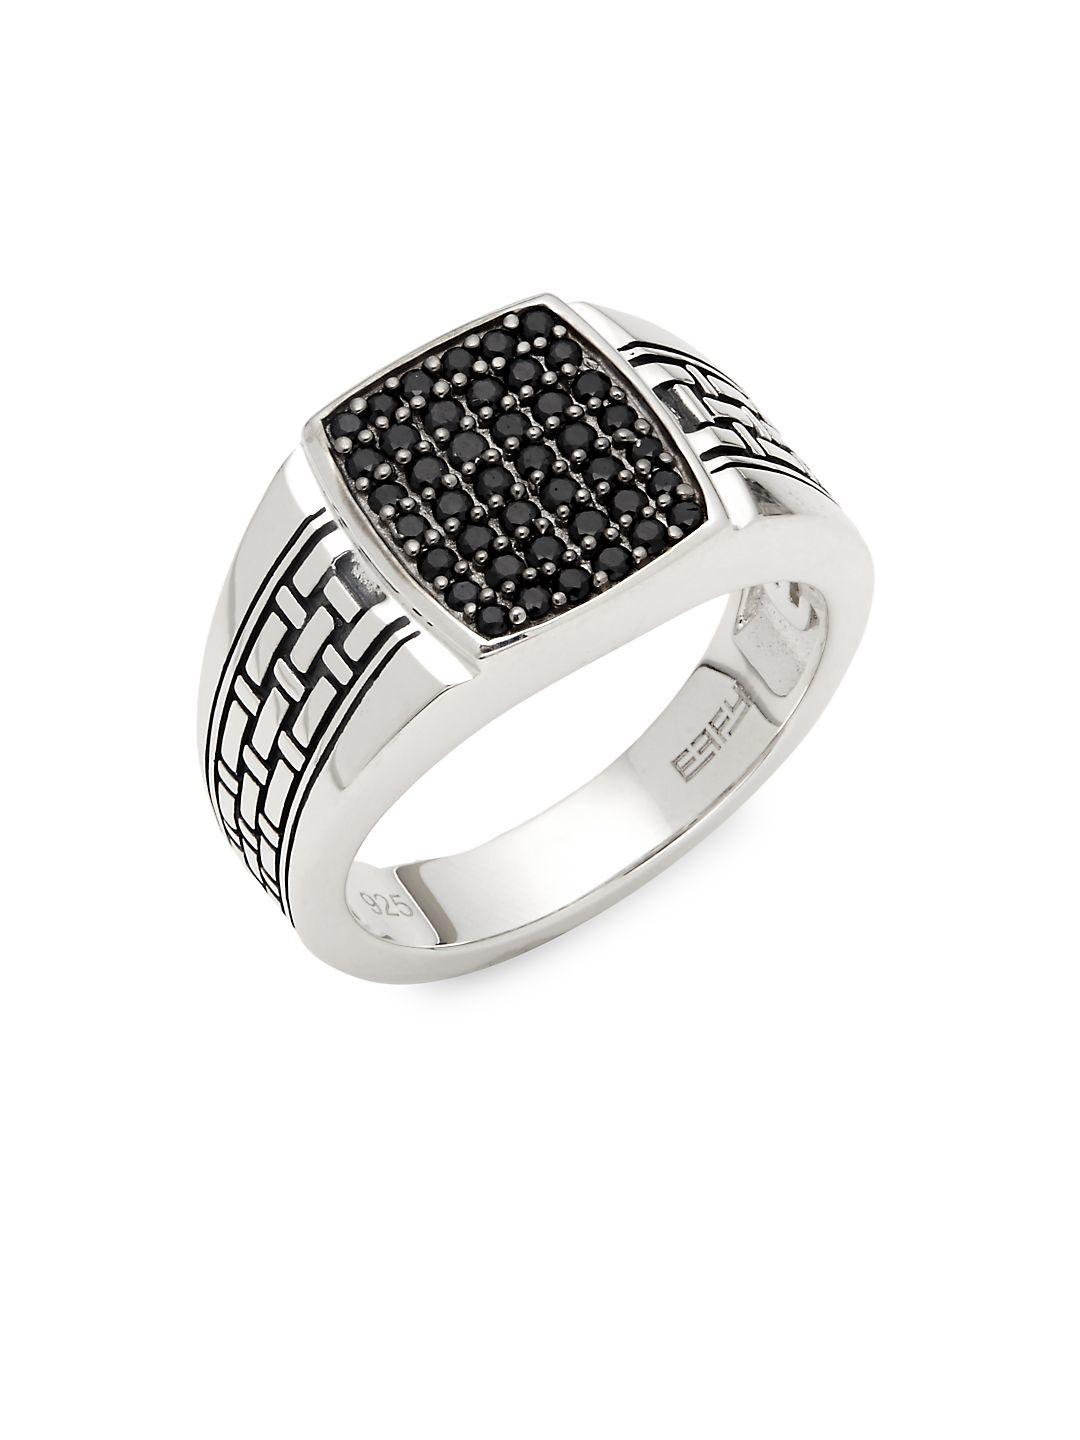 Effy Black Sapphire & Sterling Silver Ring in Metallic